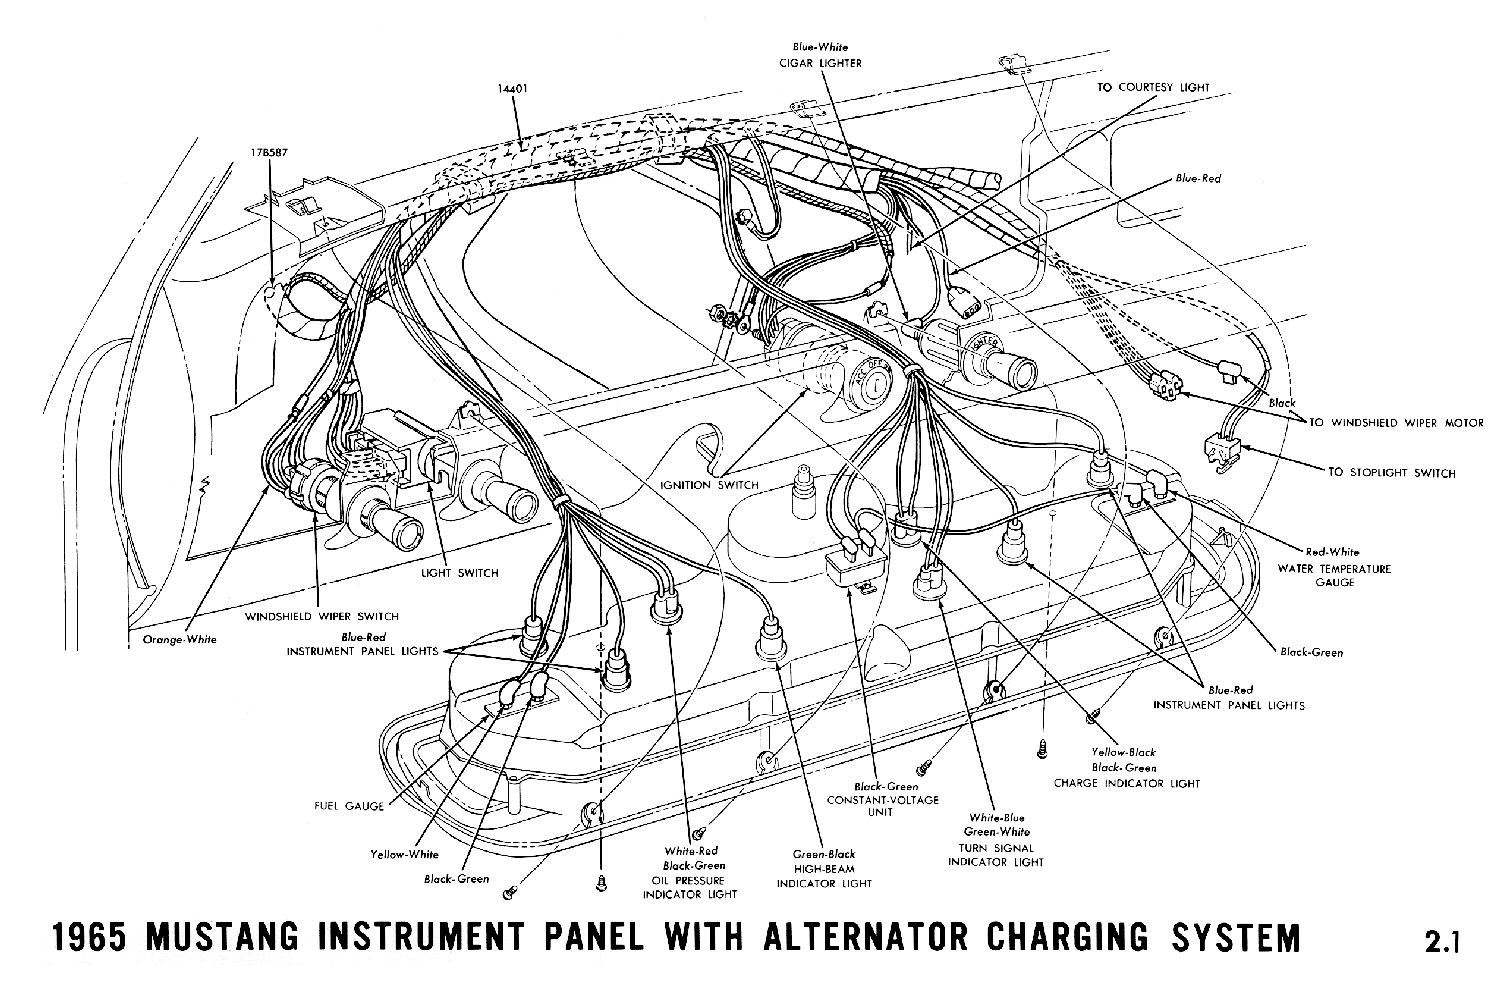 1965 Mustang Instrument Panel Wiring Diagram Simple Guide About 1966 Porsche Diagrams Average Joe Restoration Ford Cluster